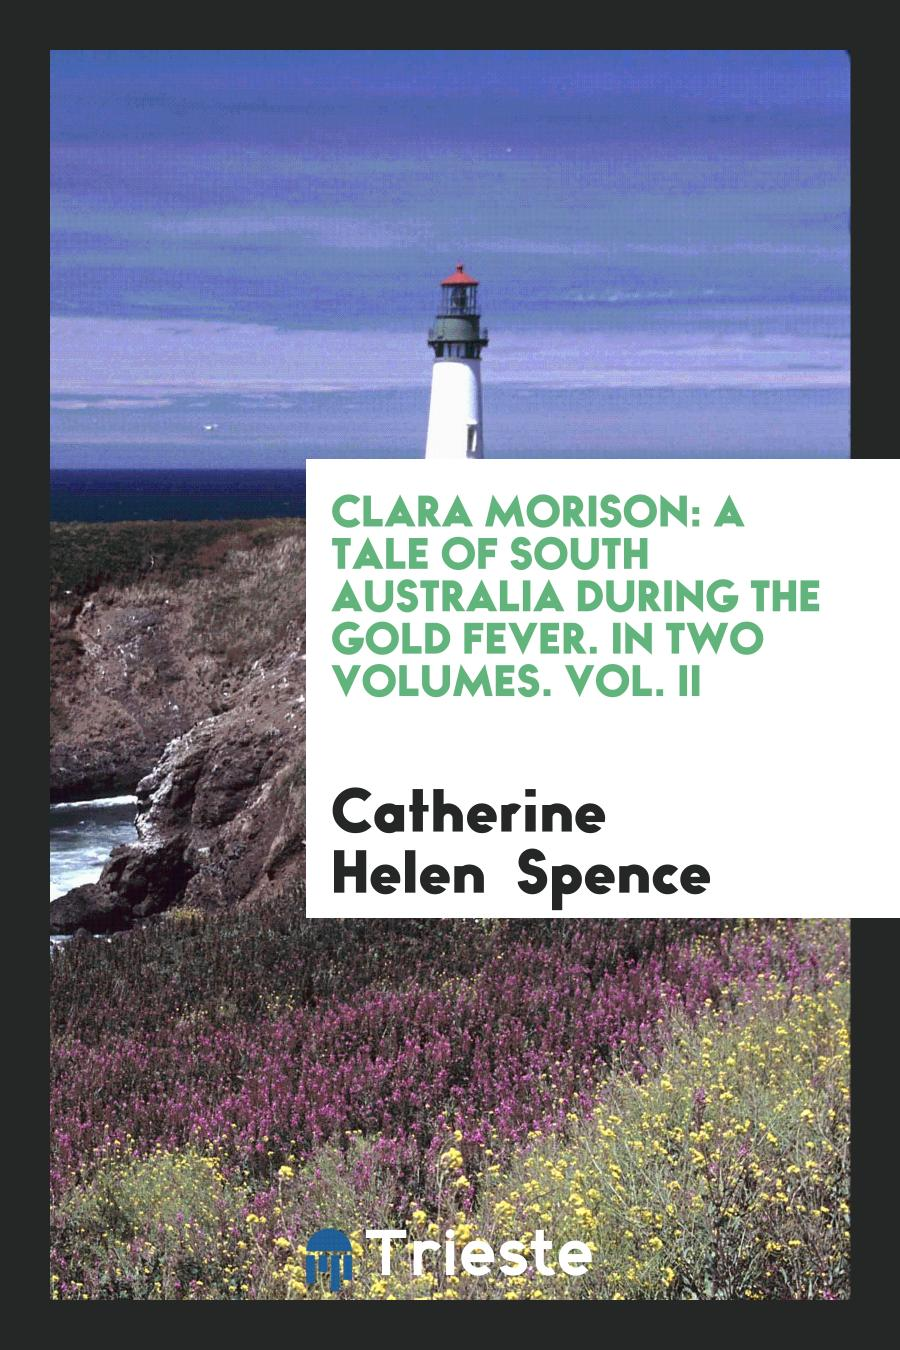 Clara Morison: A Tale of South Australia during the Gold Fever. In Two Volumes. Vol. II